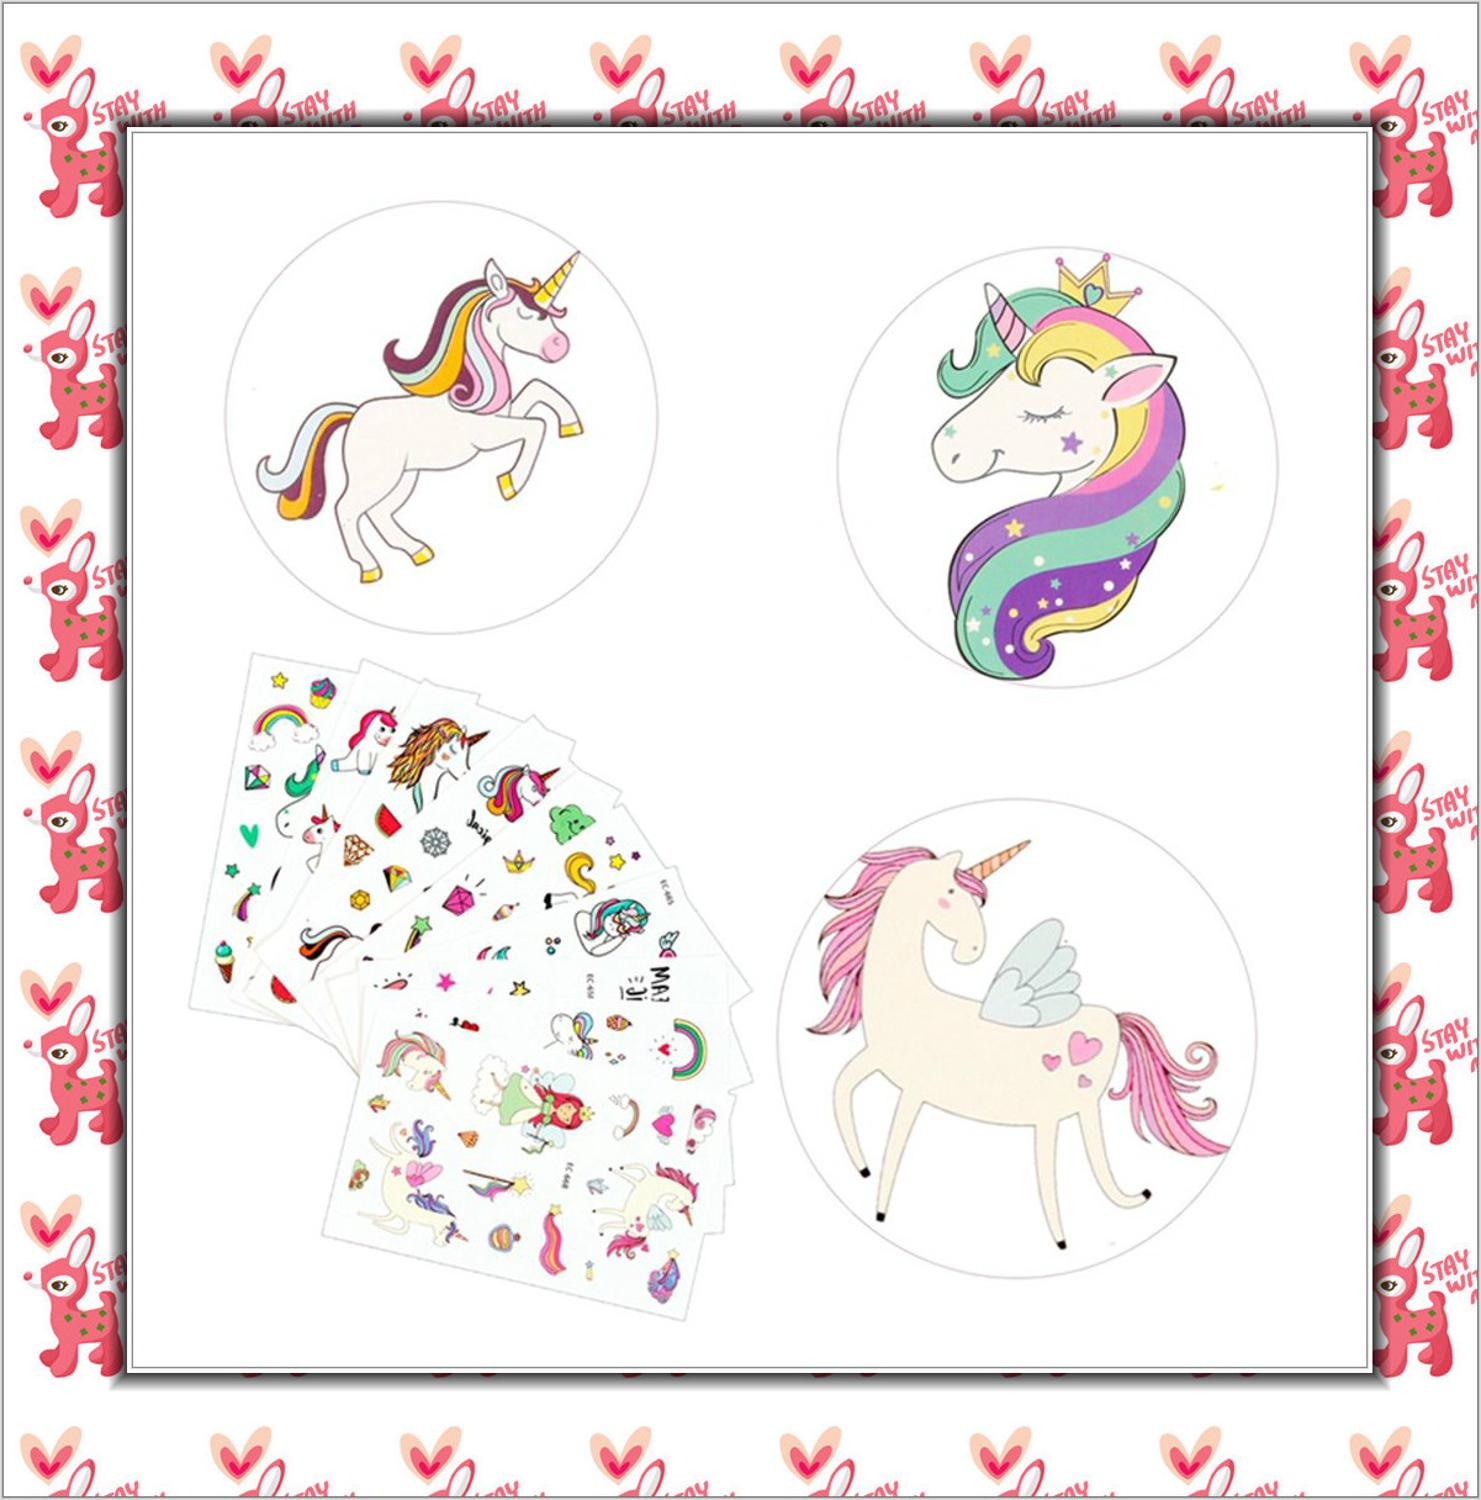 5Pcs Disposable Tattoo Sticker Unicorn Party Decoration Baby Kids Unicorn Birthday Party Favors Temporary Tattoos Supplies 1